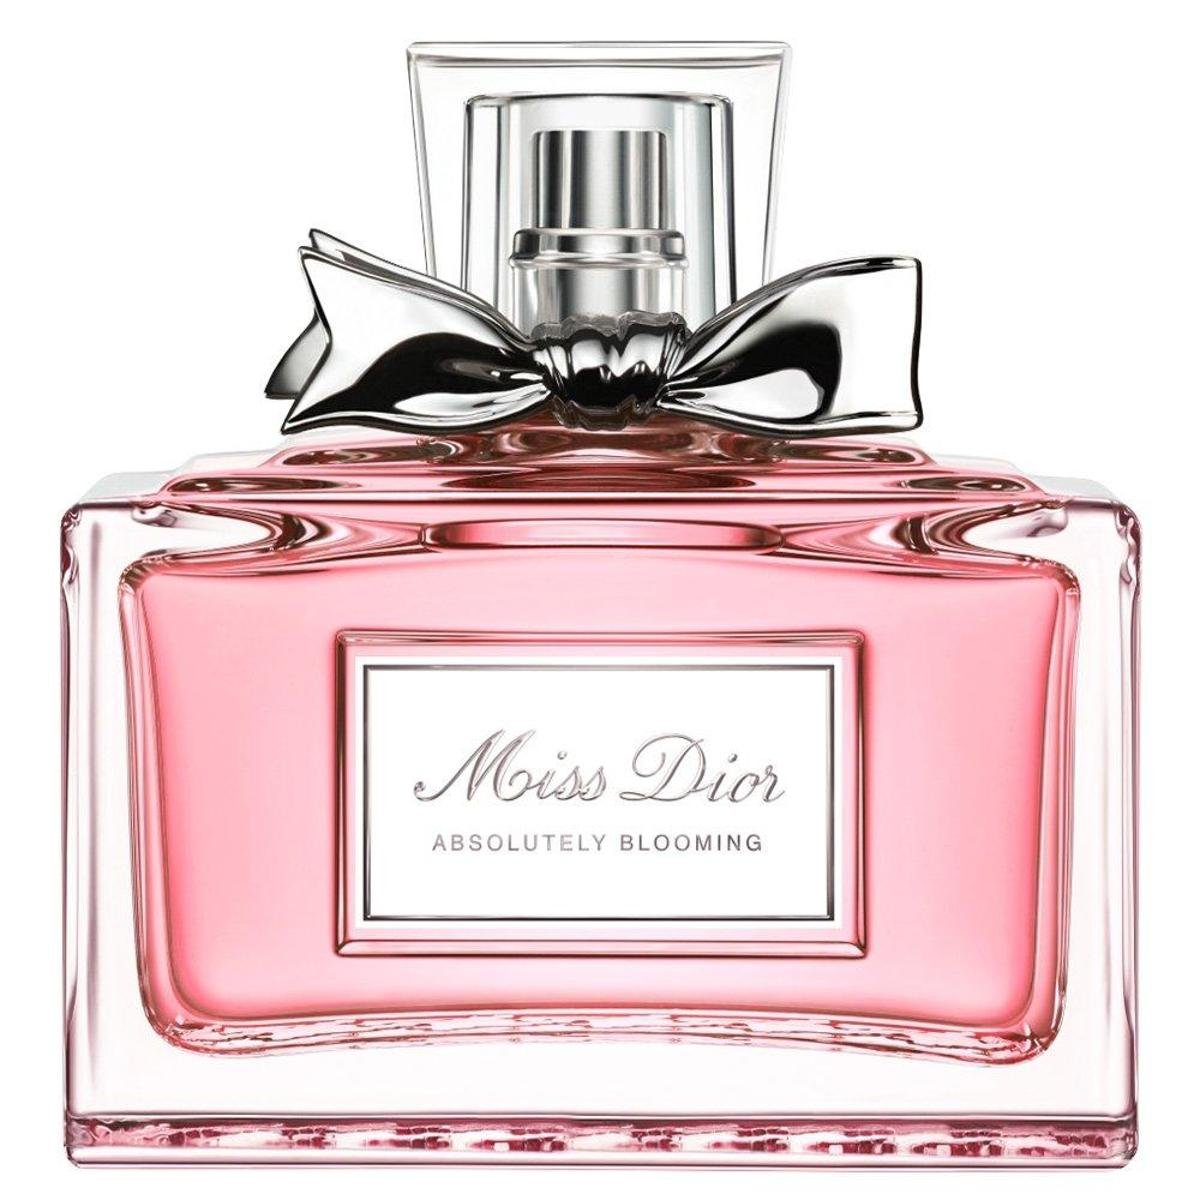 67f5cb15be7 Miss Dior Absolutely Blooming Dior - Perfume Feminino - Eau de Parfum 100ml  - Incolor - Compre Agora